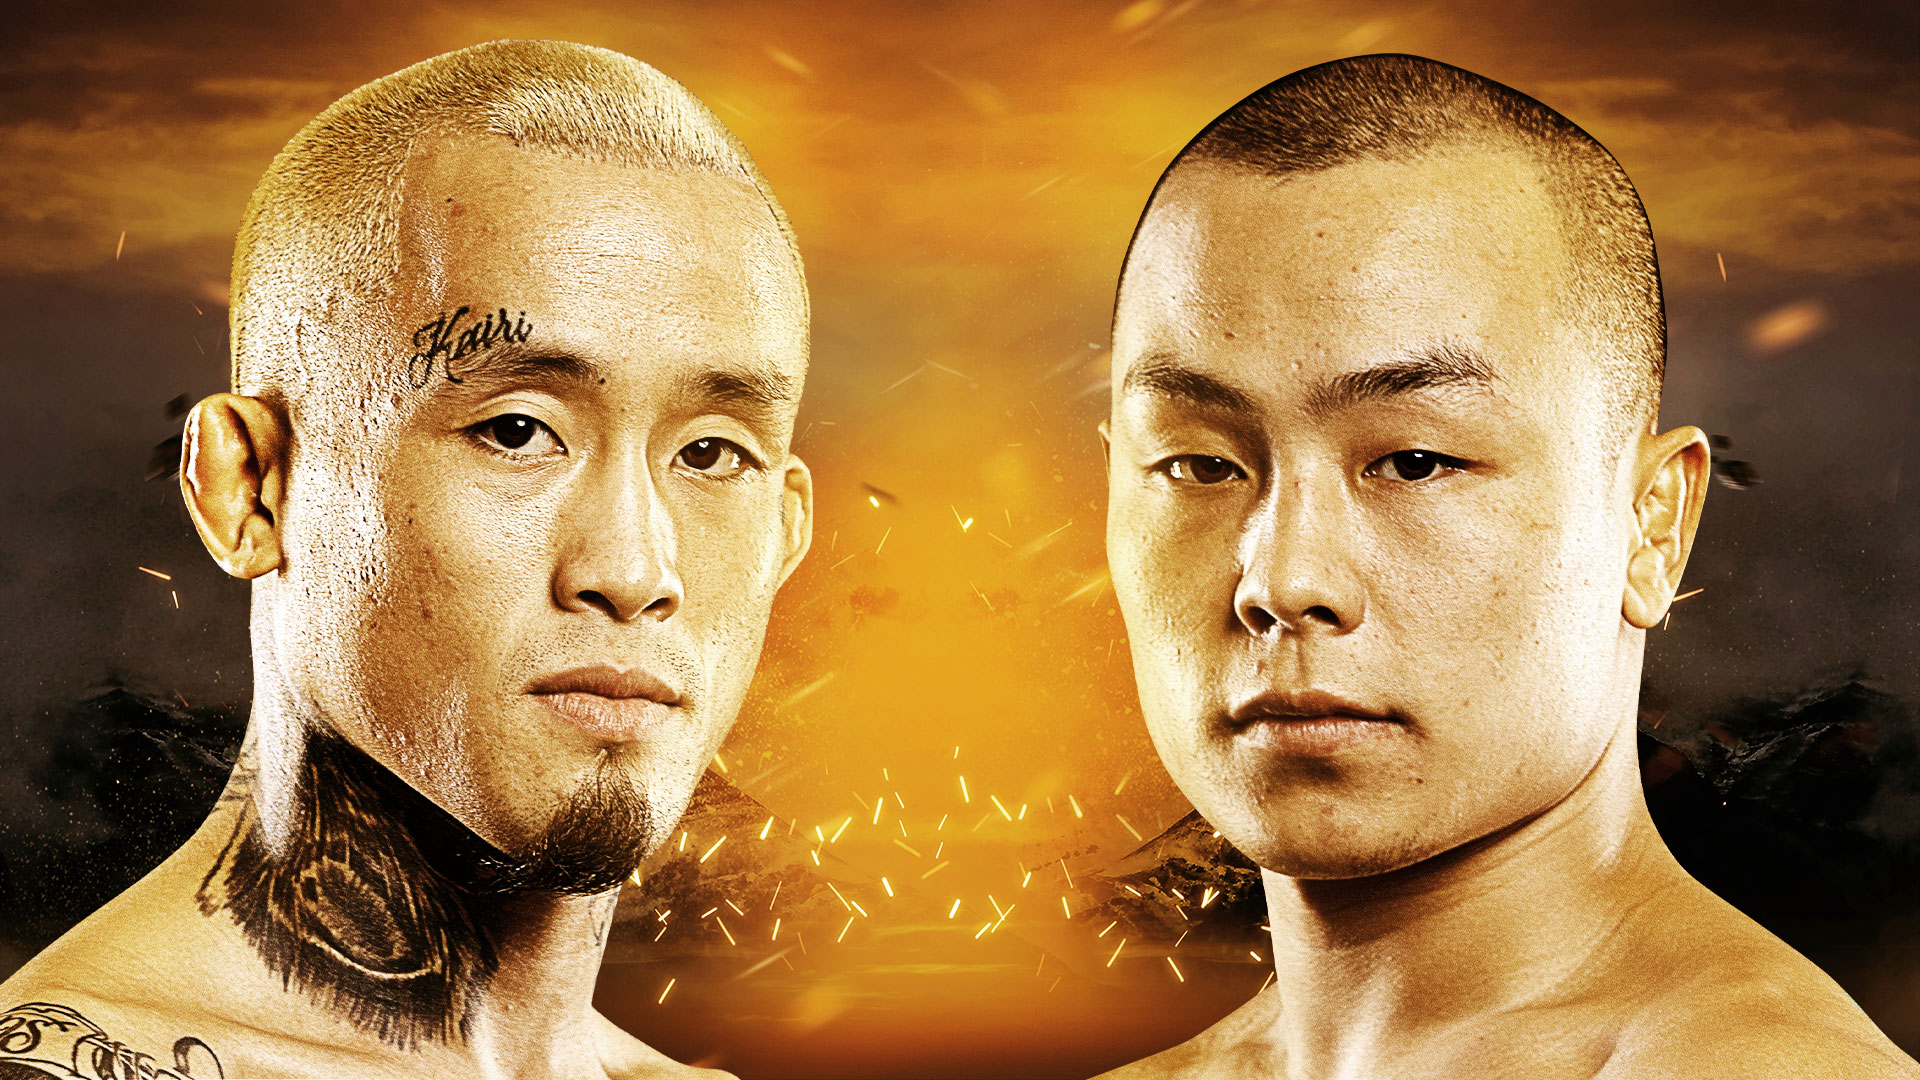 MMA fightes Anthony Do and Liang Hui collide at ONE: FULL BLAST on 28 May